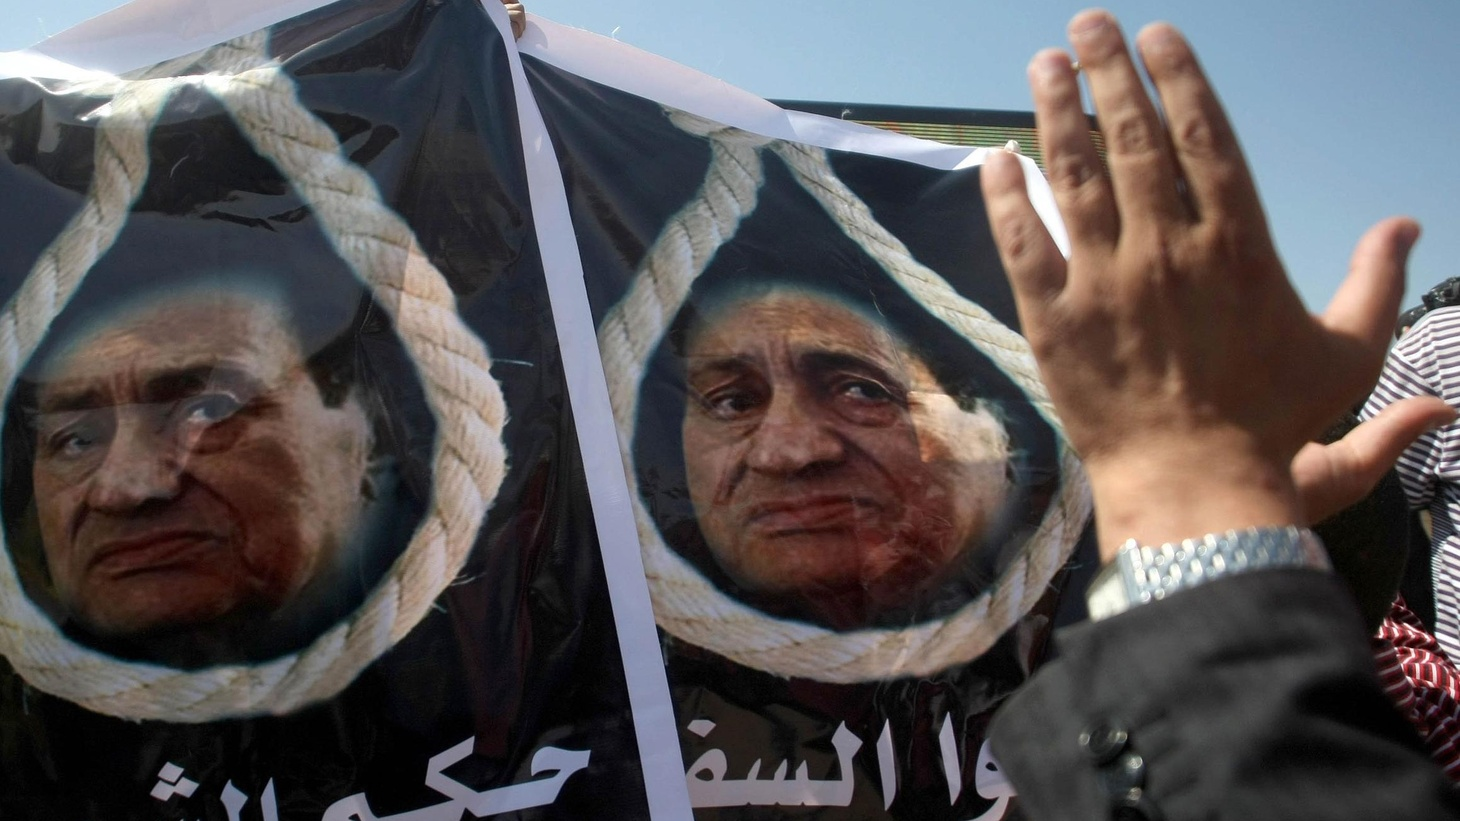 """The so-called """"Arab Spring"""" began with peaceful protests that led to hopes of non-violent revolution in Tunisia and Egypt. In Syria and Libya, dissent has led to bloody..."""